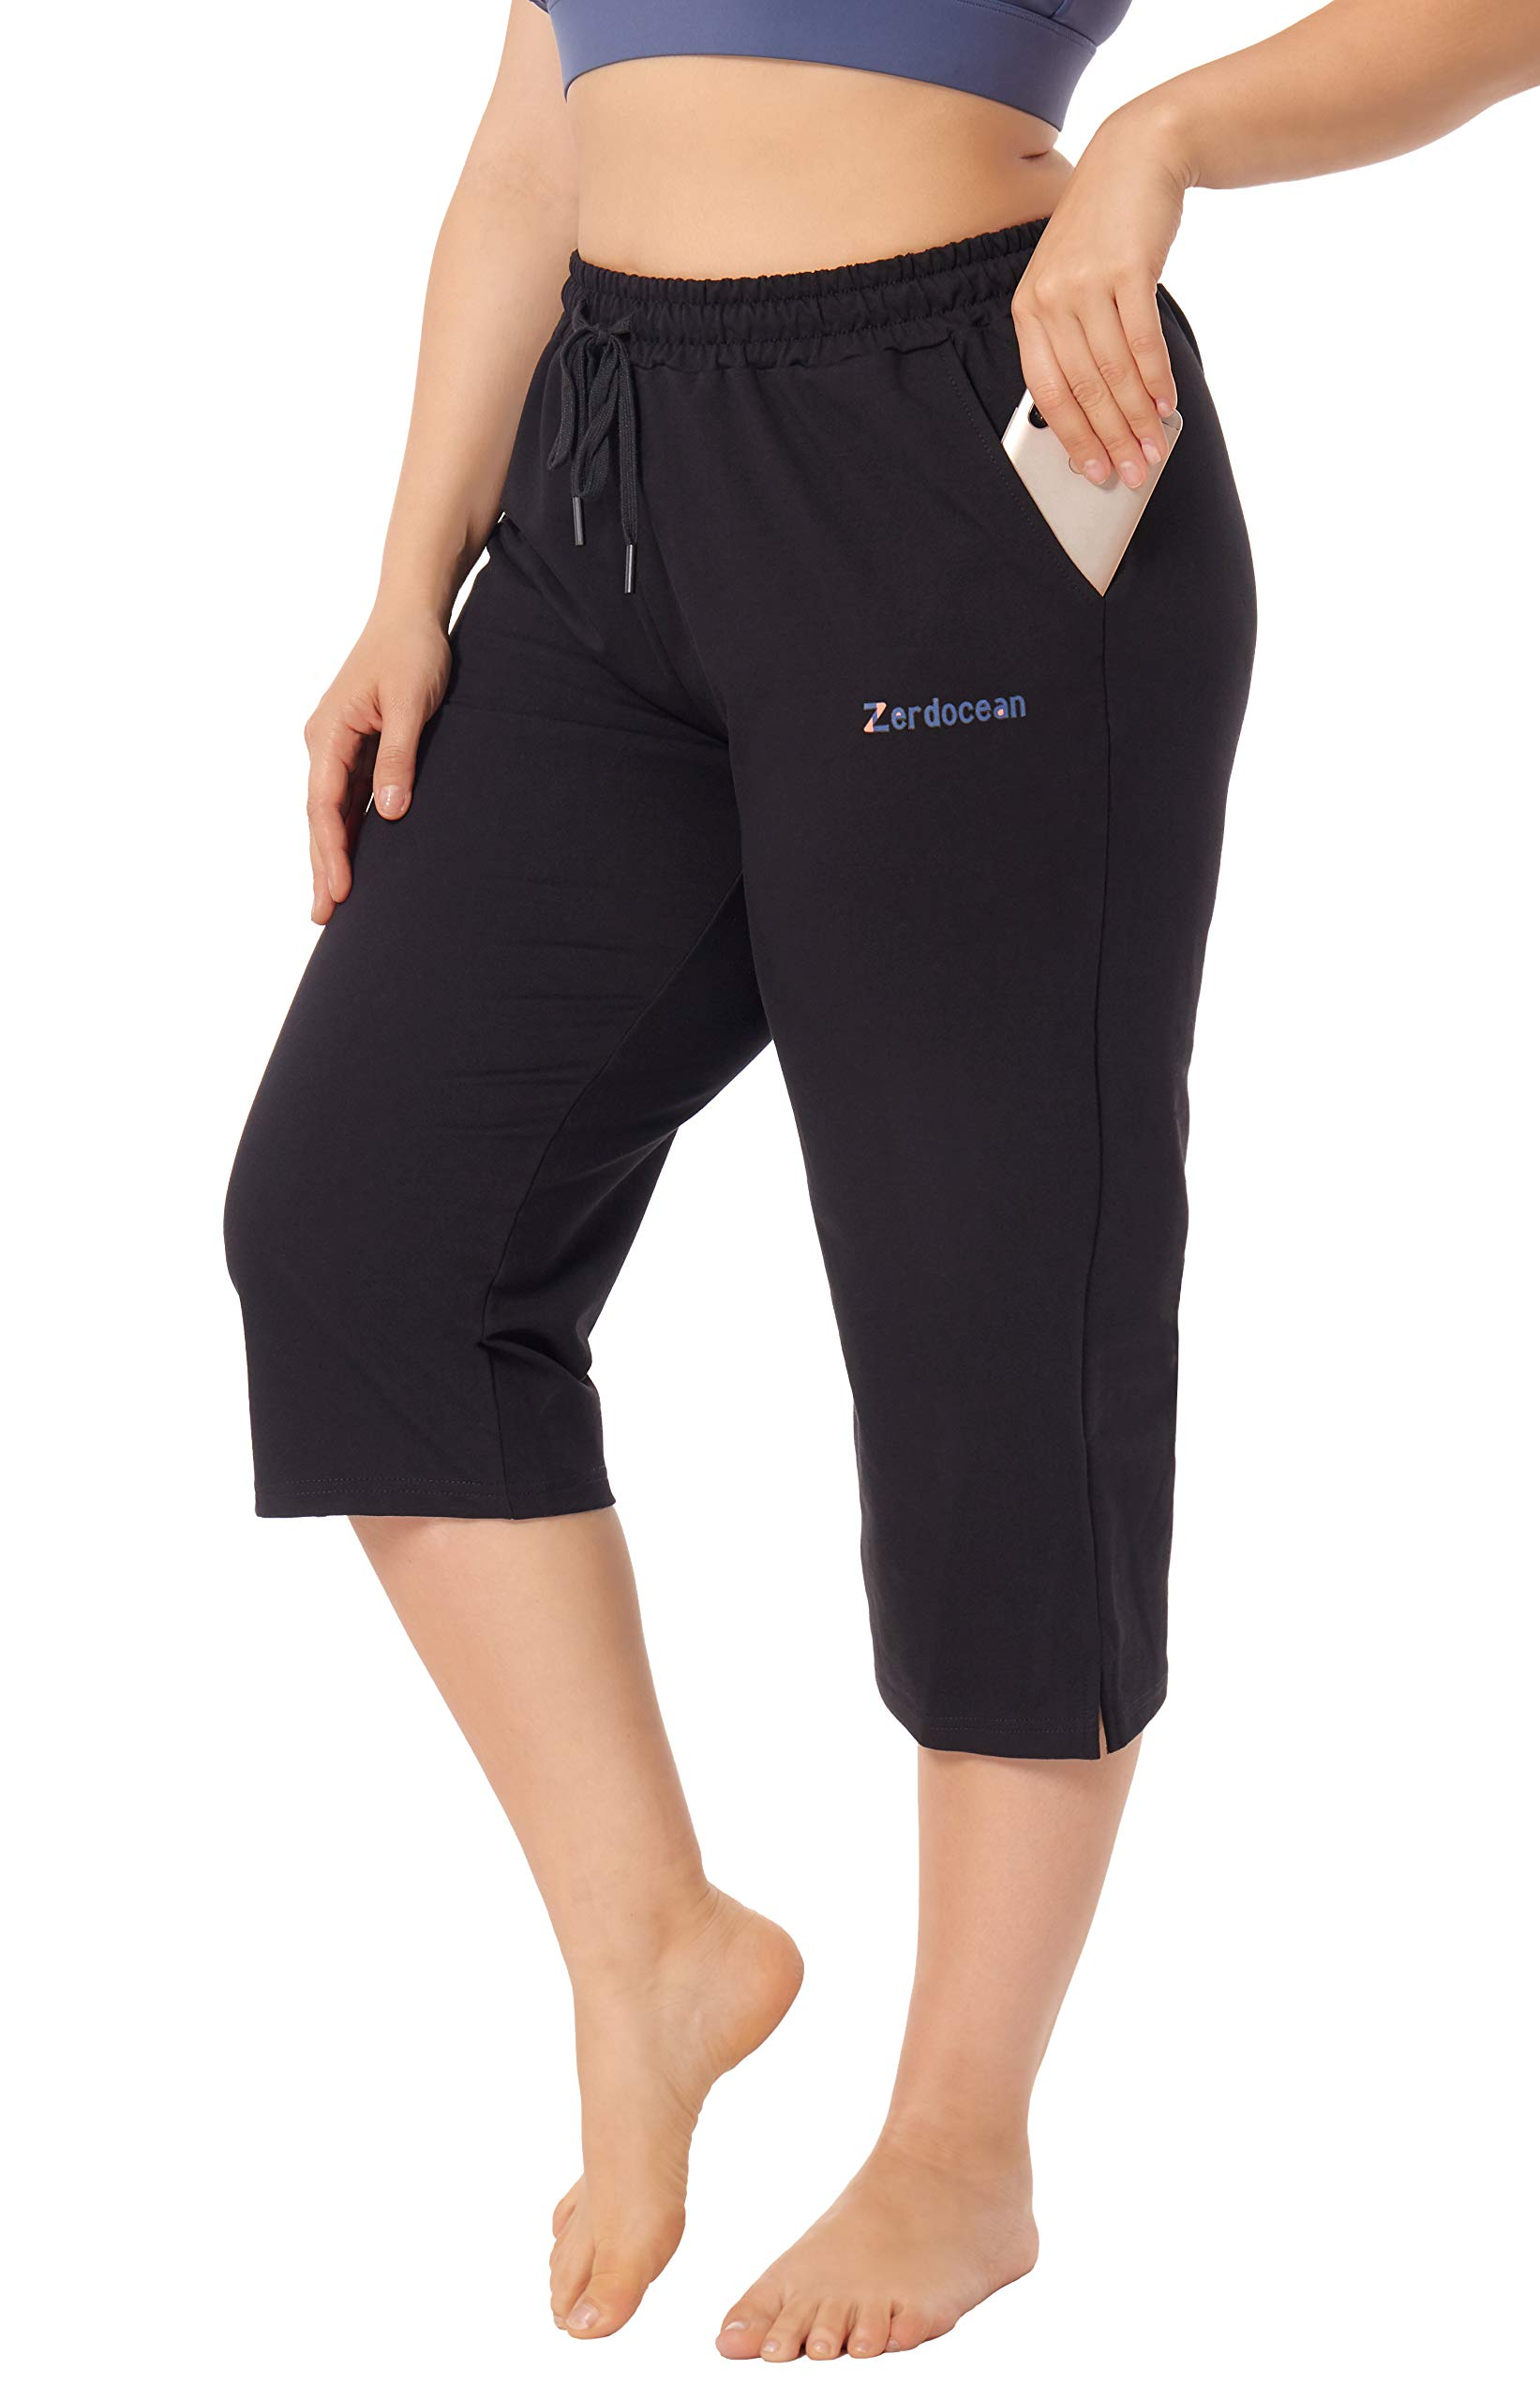 Women's Plus Size Active Yoga Lounge Indoor Jersey Capri Walking Crop Pants with Pockets Drawstring